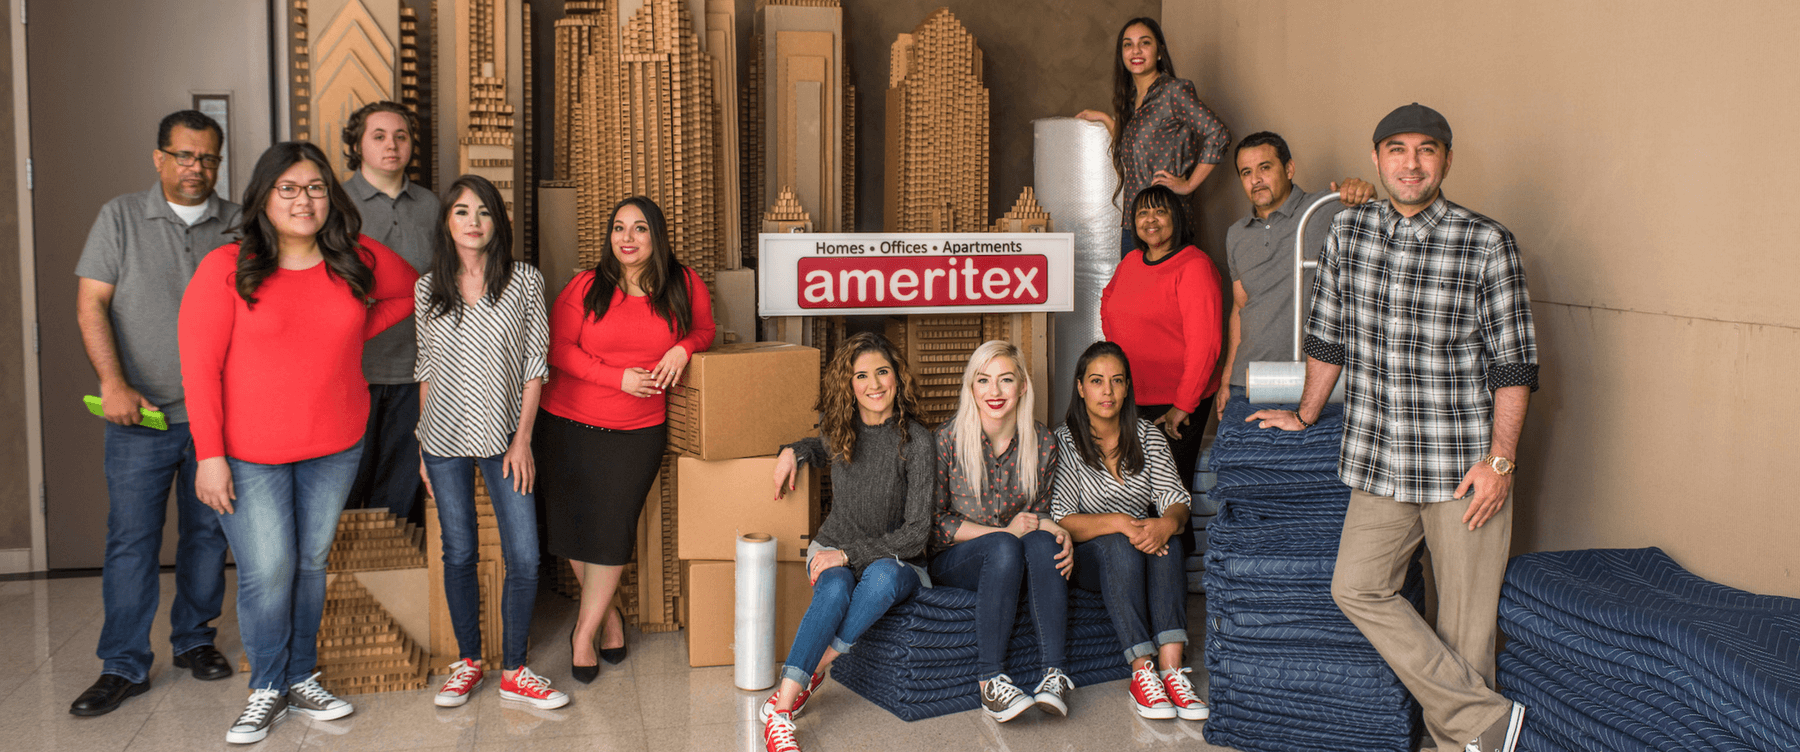 Ameritex Staff Photo With Box City